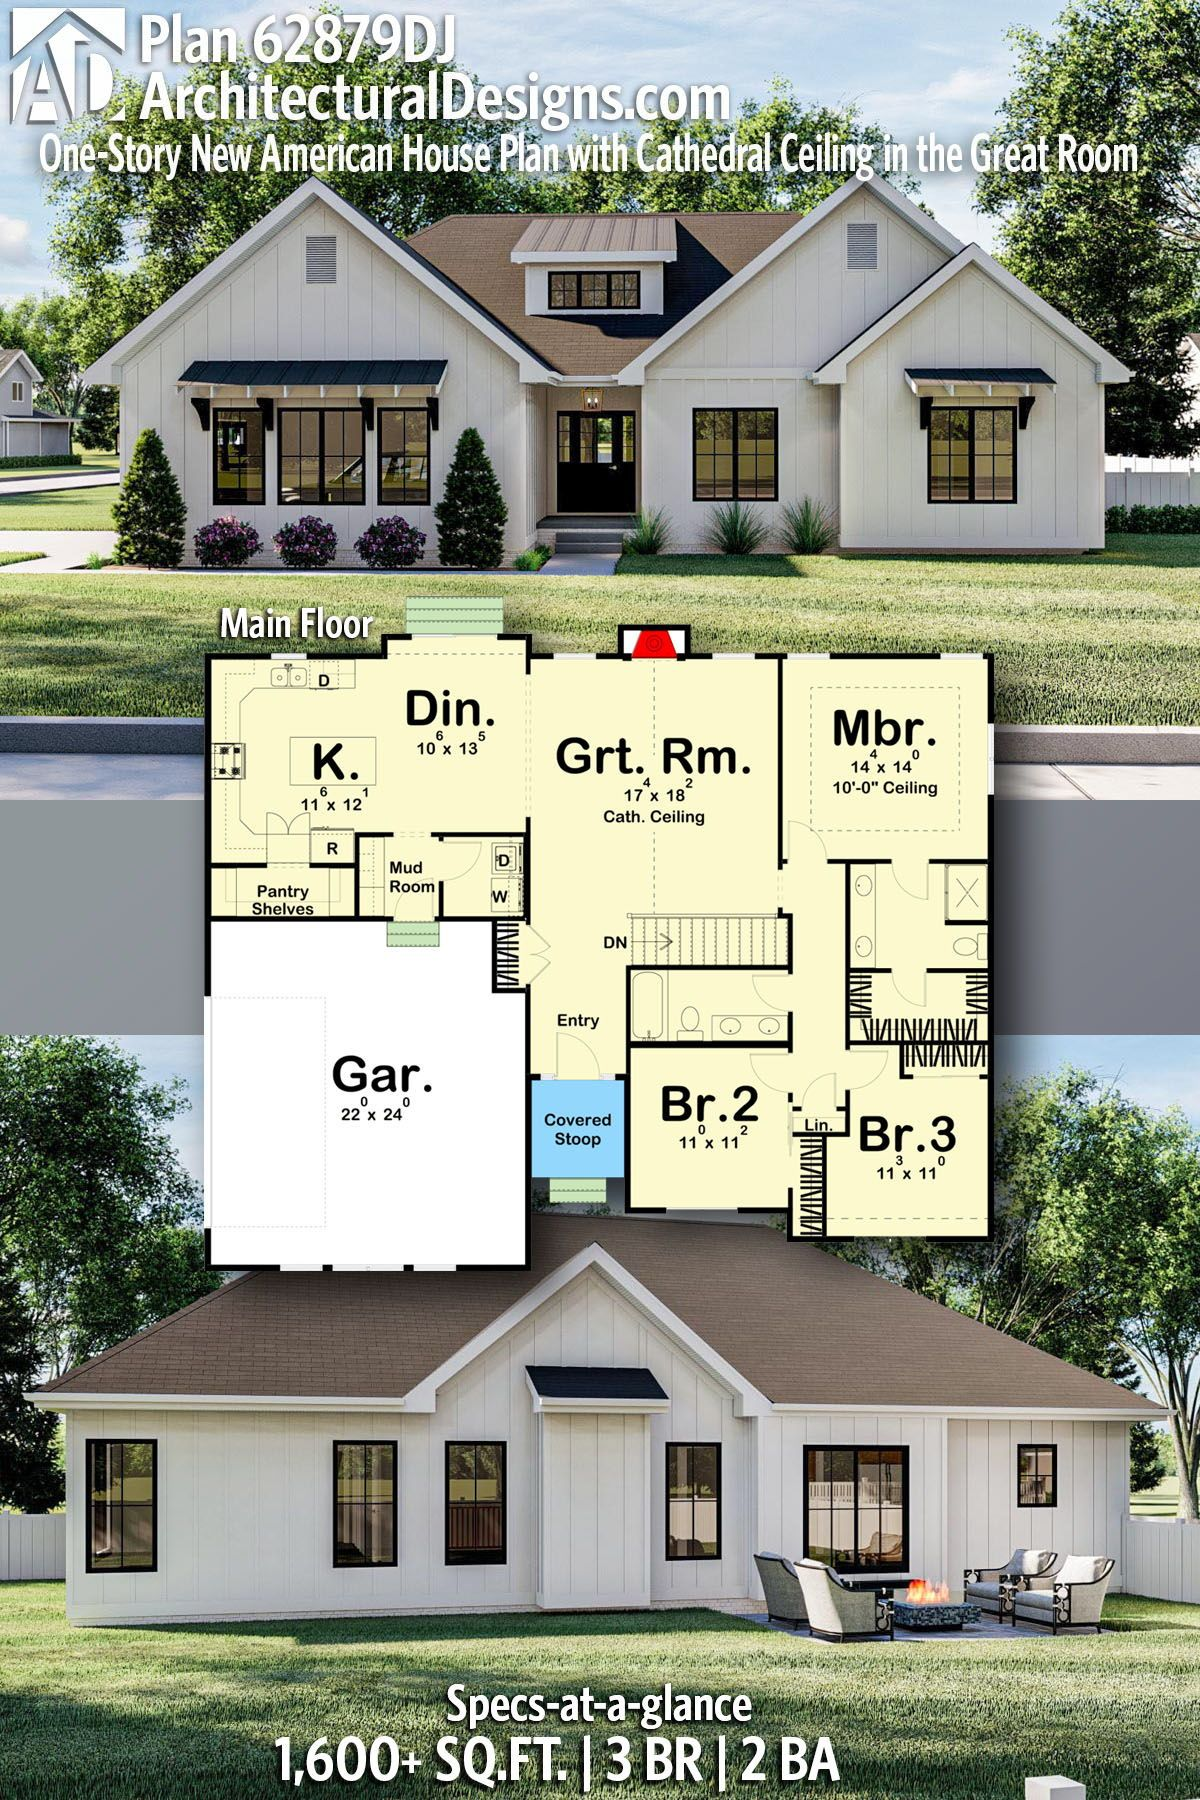 Plan 62879dj One Story New American House Plan With Cathedral Ceiling In The Great Room Family House Plans House Plans Farmhouse New House Plans